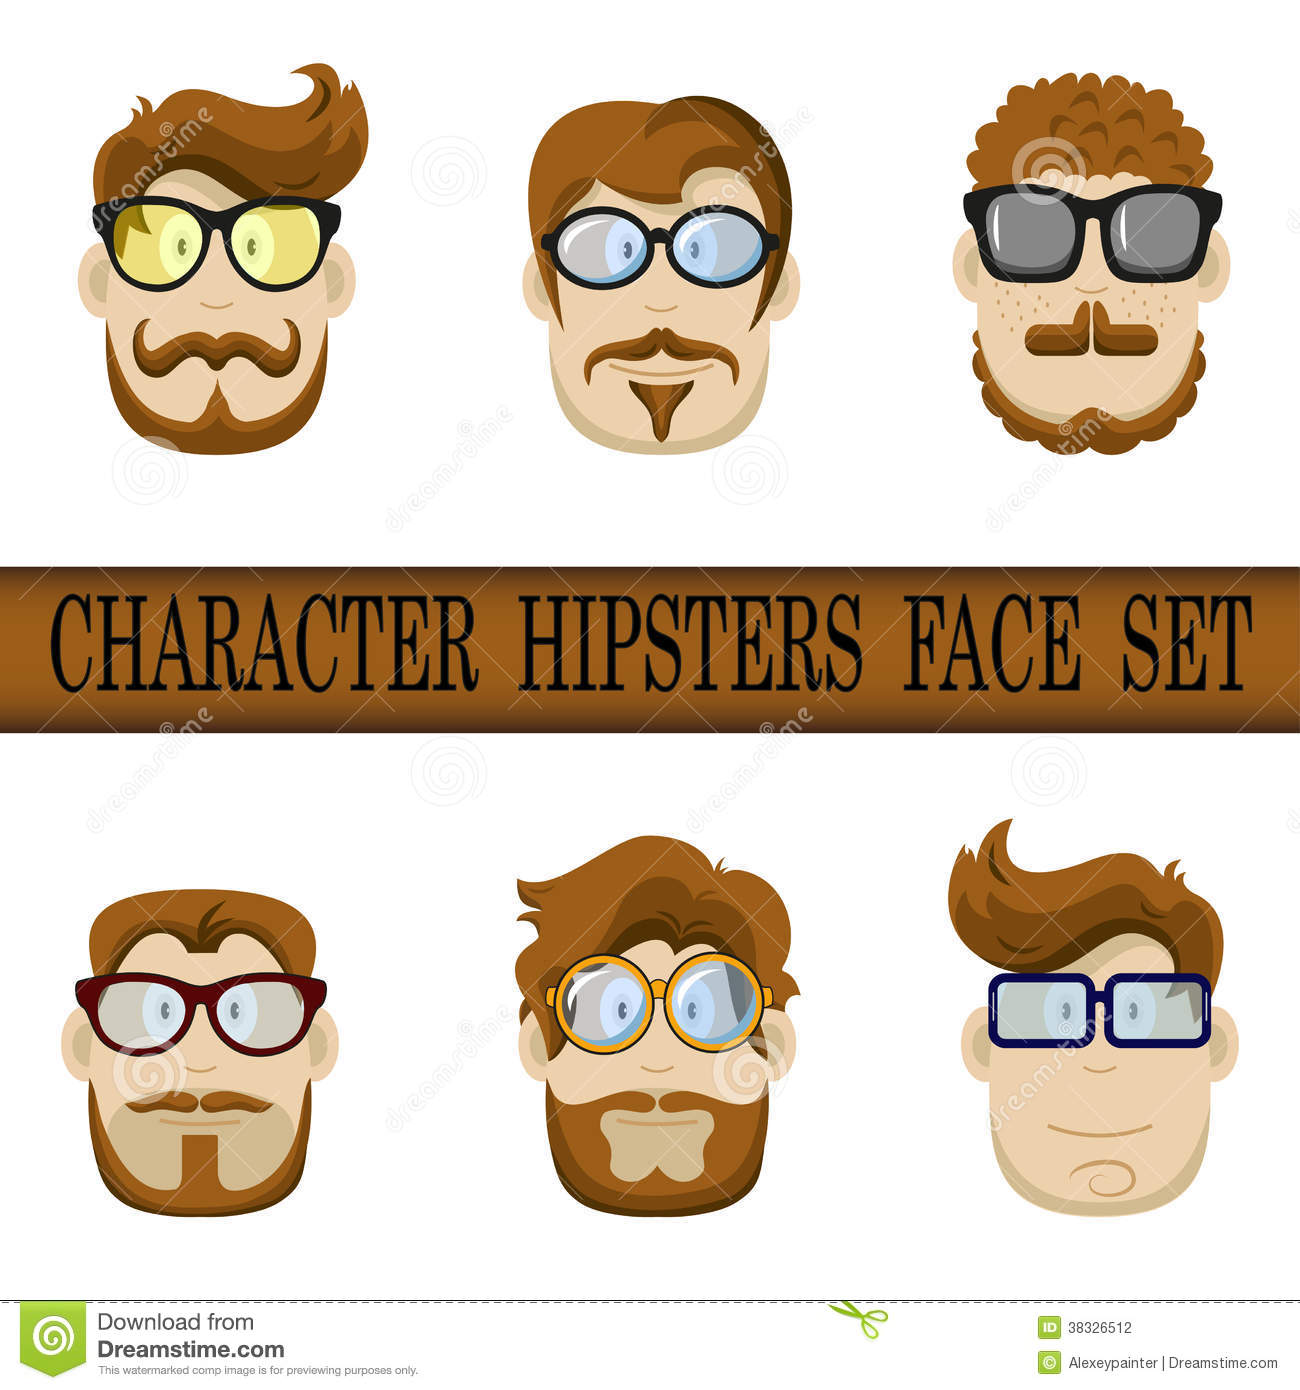 e0280fd84 Hipster character face set. Hipster Character Kit - Hairstyles, Glasses,  Mustaches, Beards.